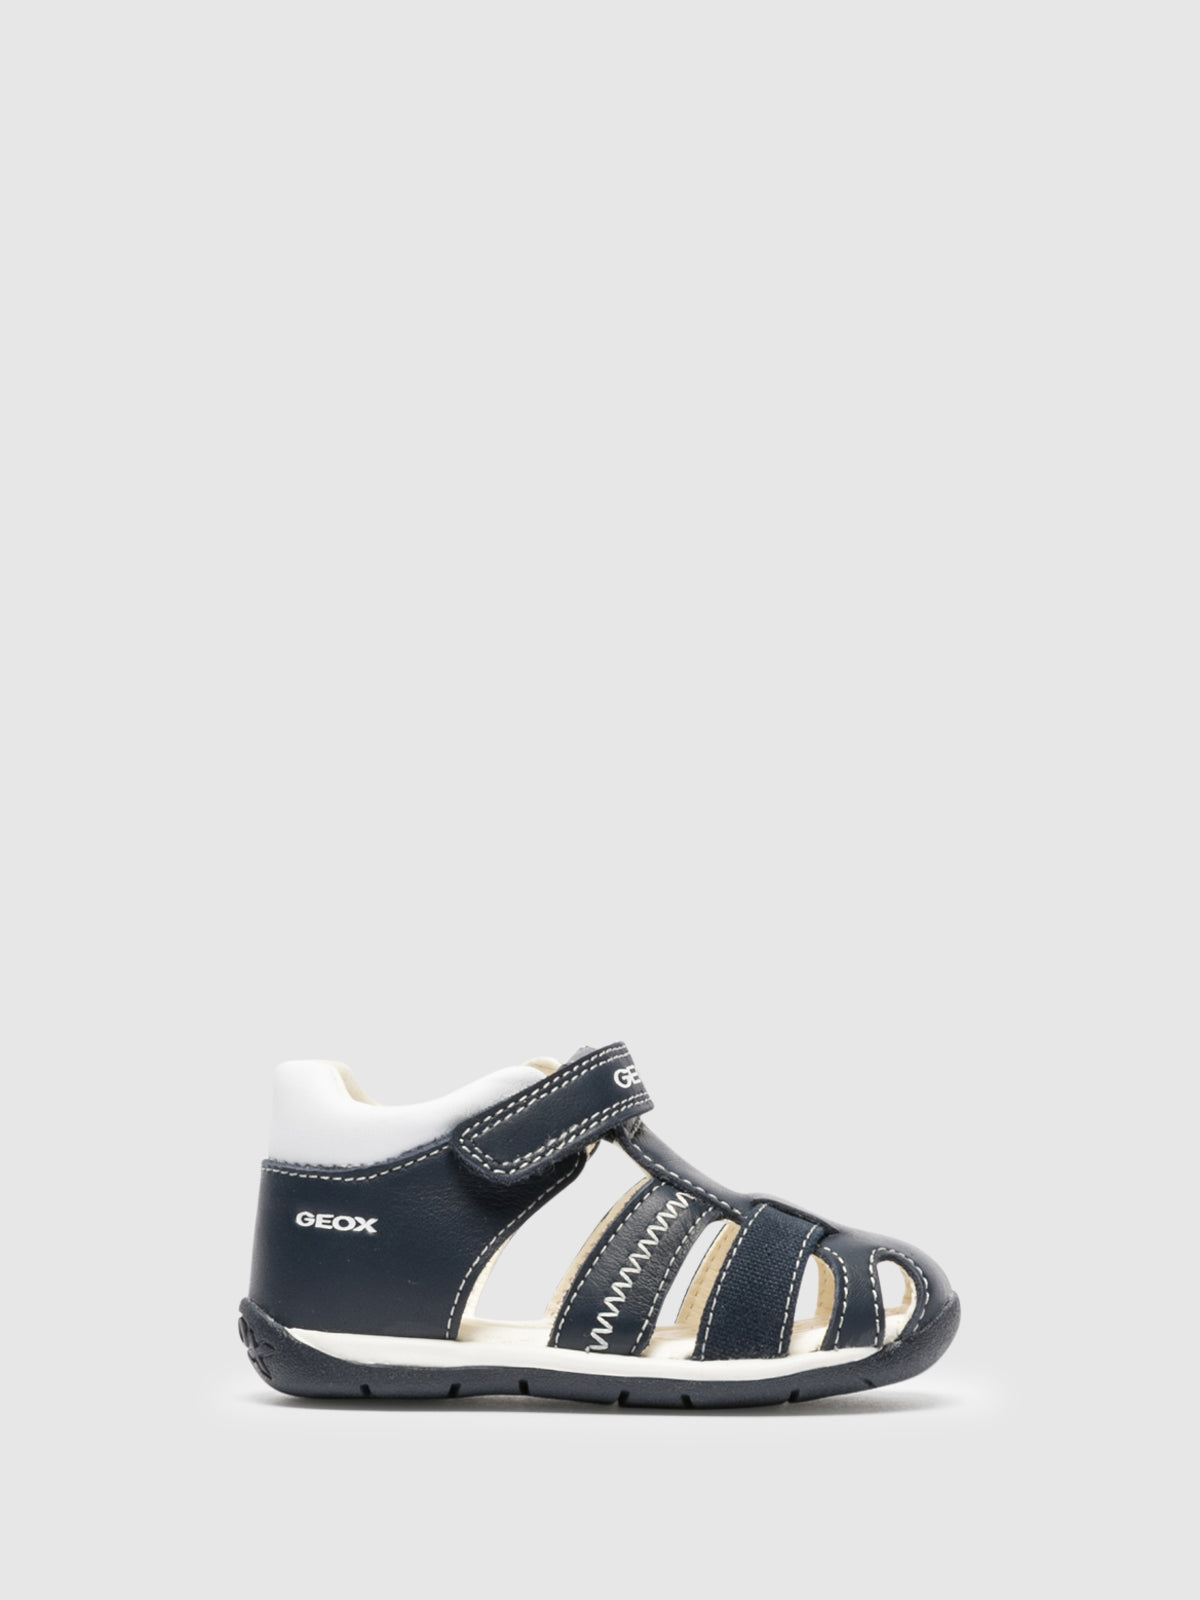 Geox Blue Buckle Sandals